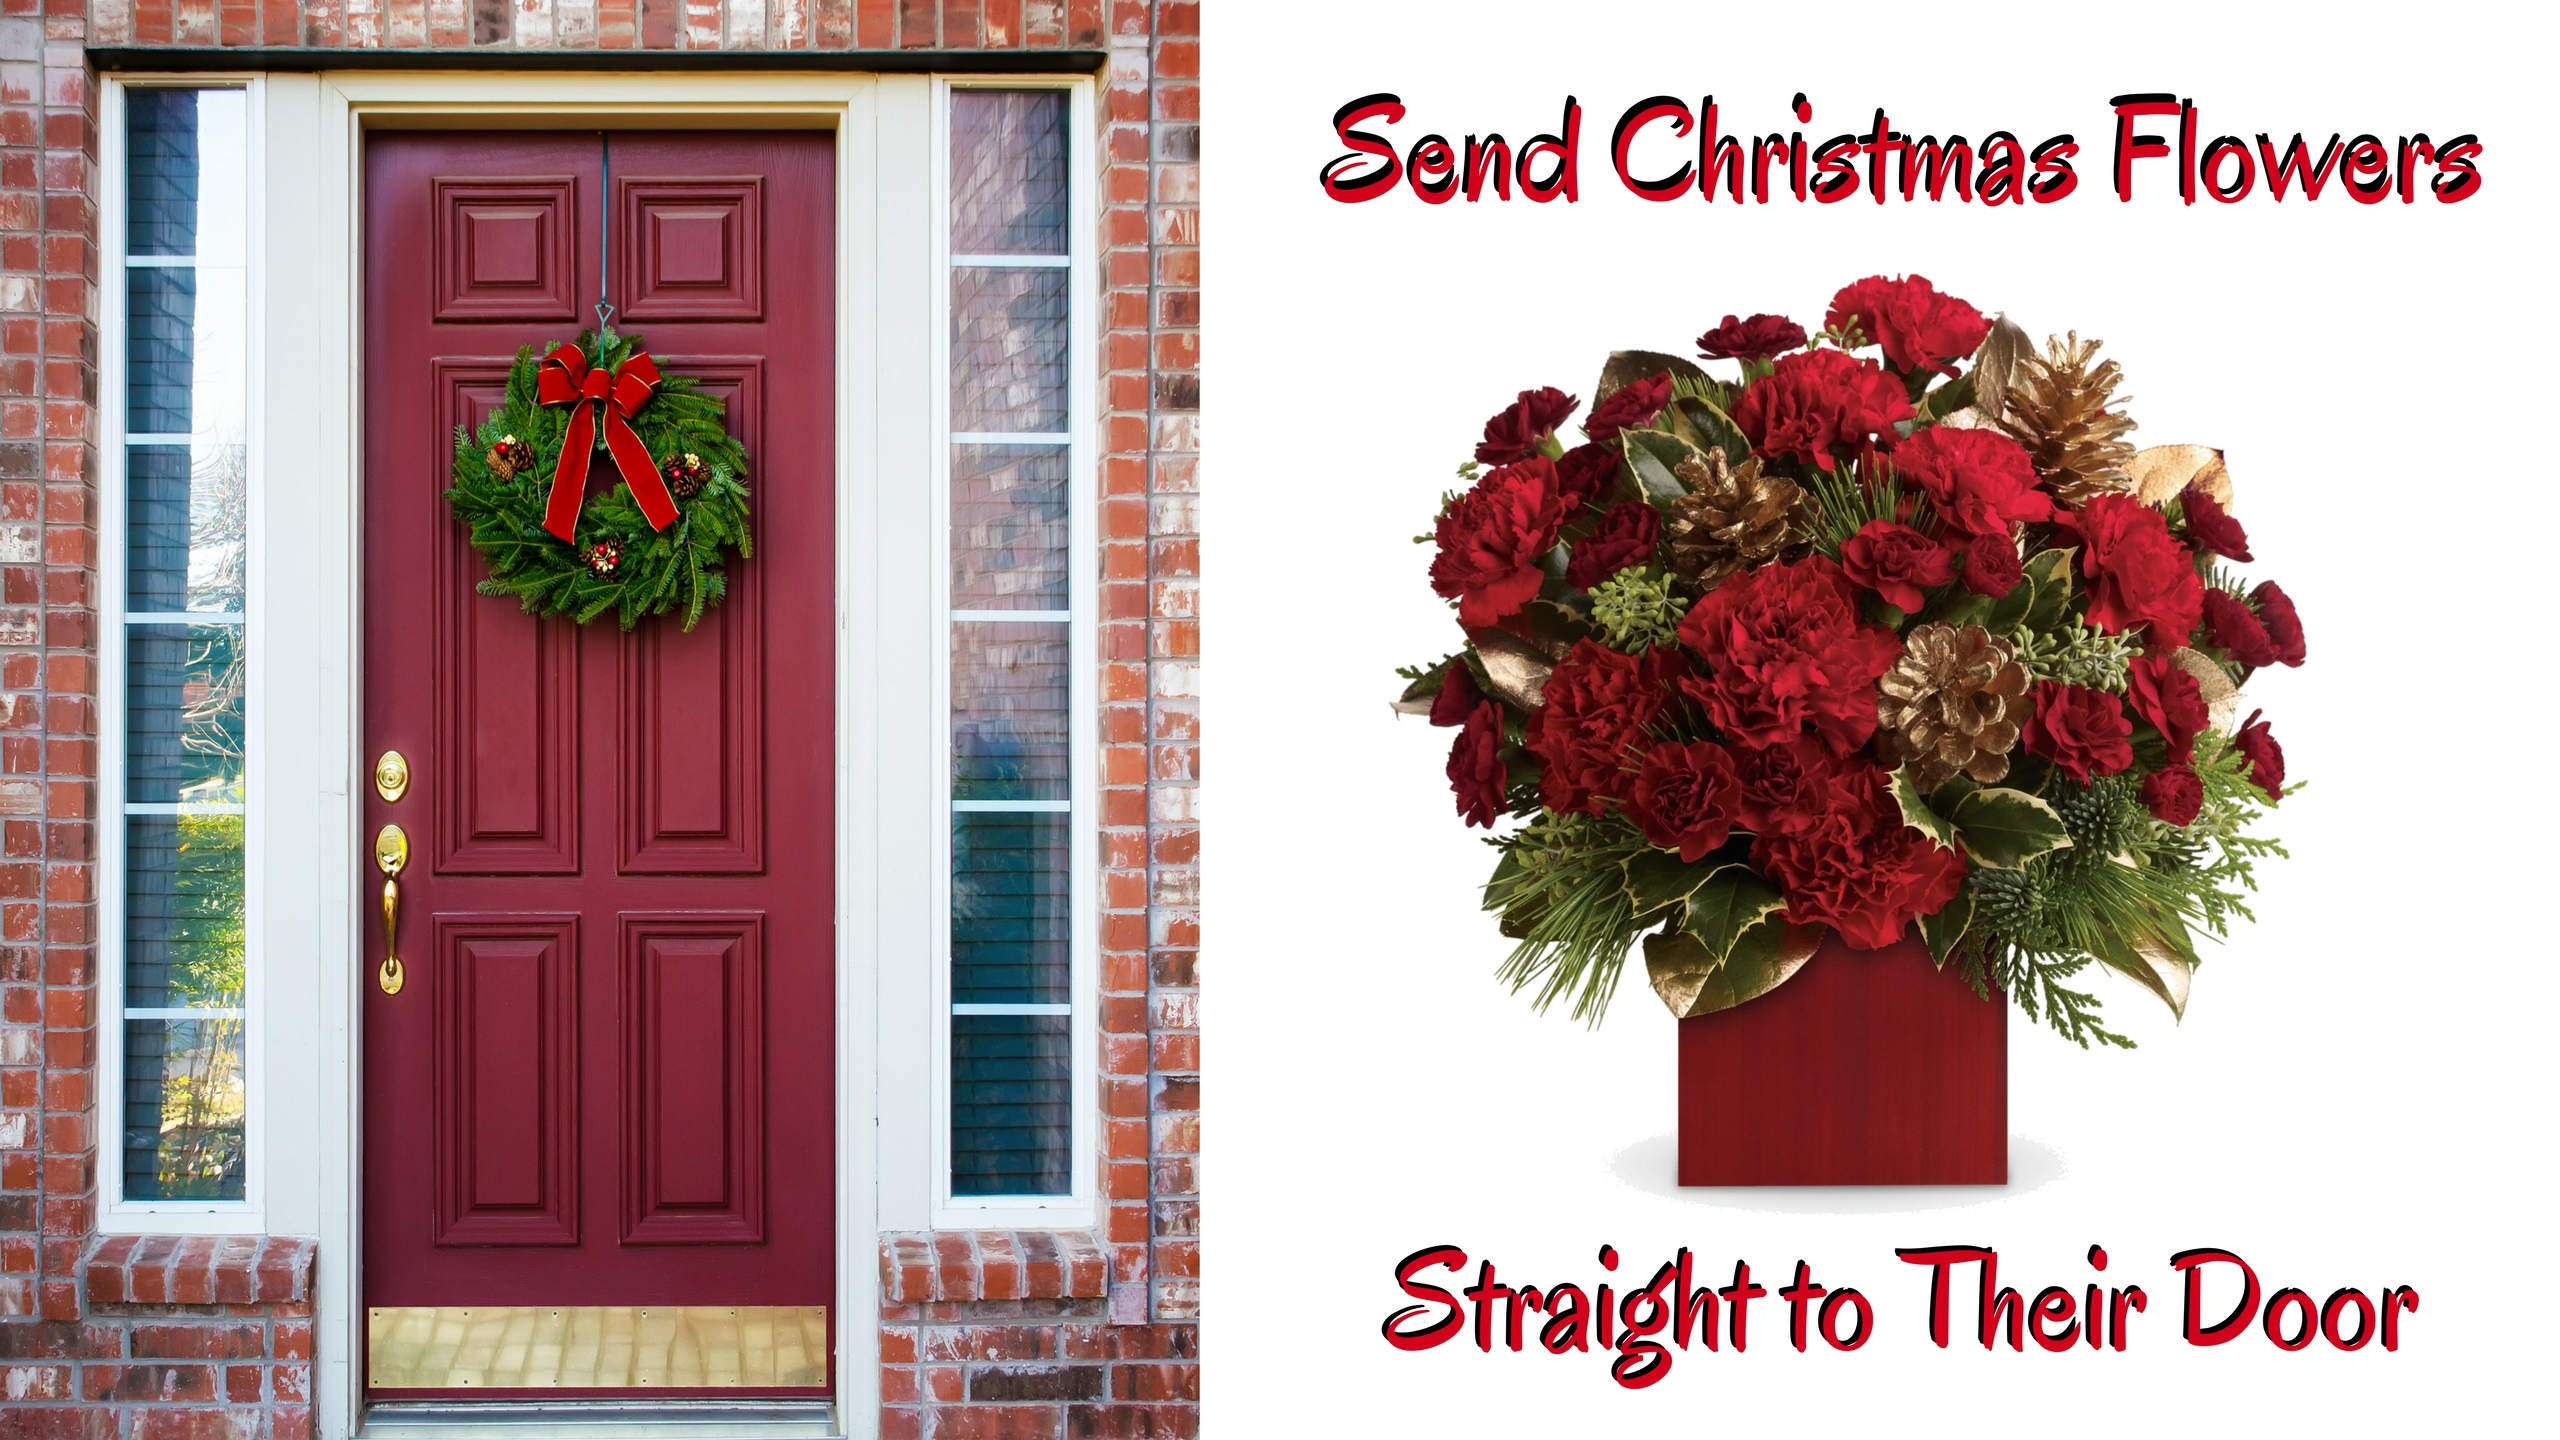 Tis The Season For Delivering Festive Christmas Floral Arrangements